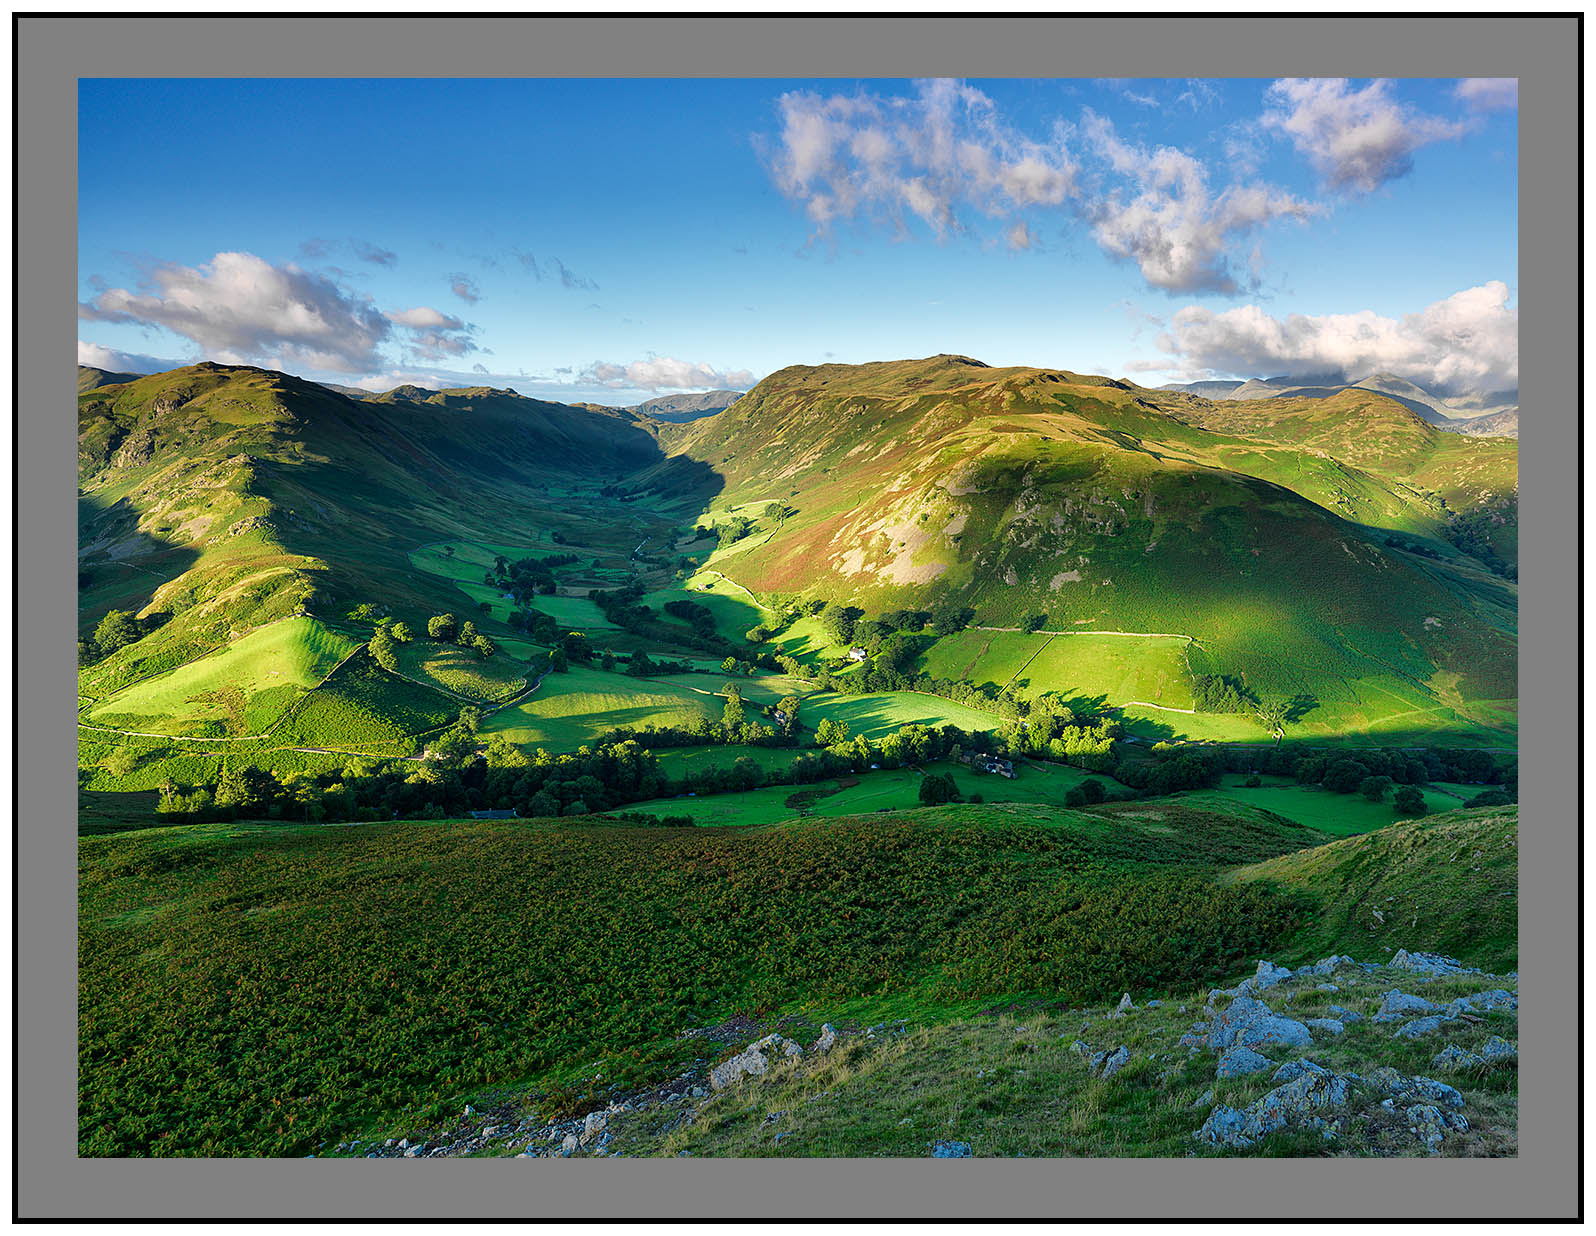 A 09854 Early morning light on Beda Fell Boredale Place Fell and the Helvellyn massif from Hallin Fell